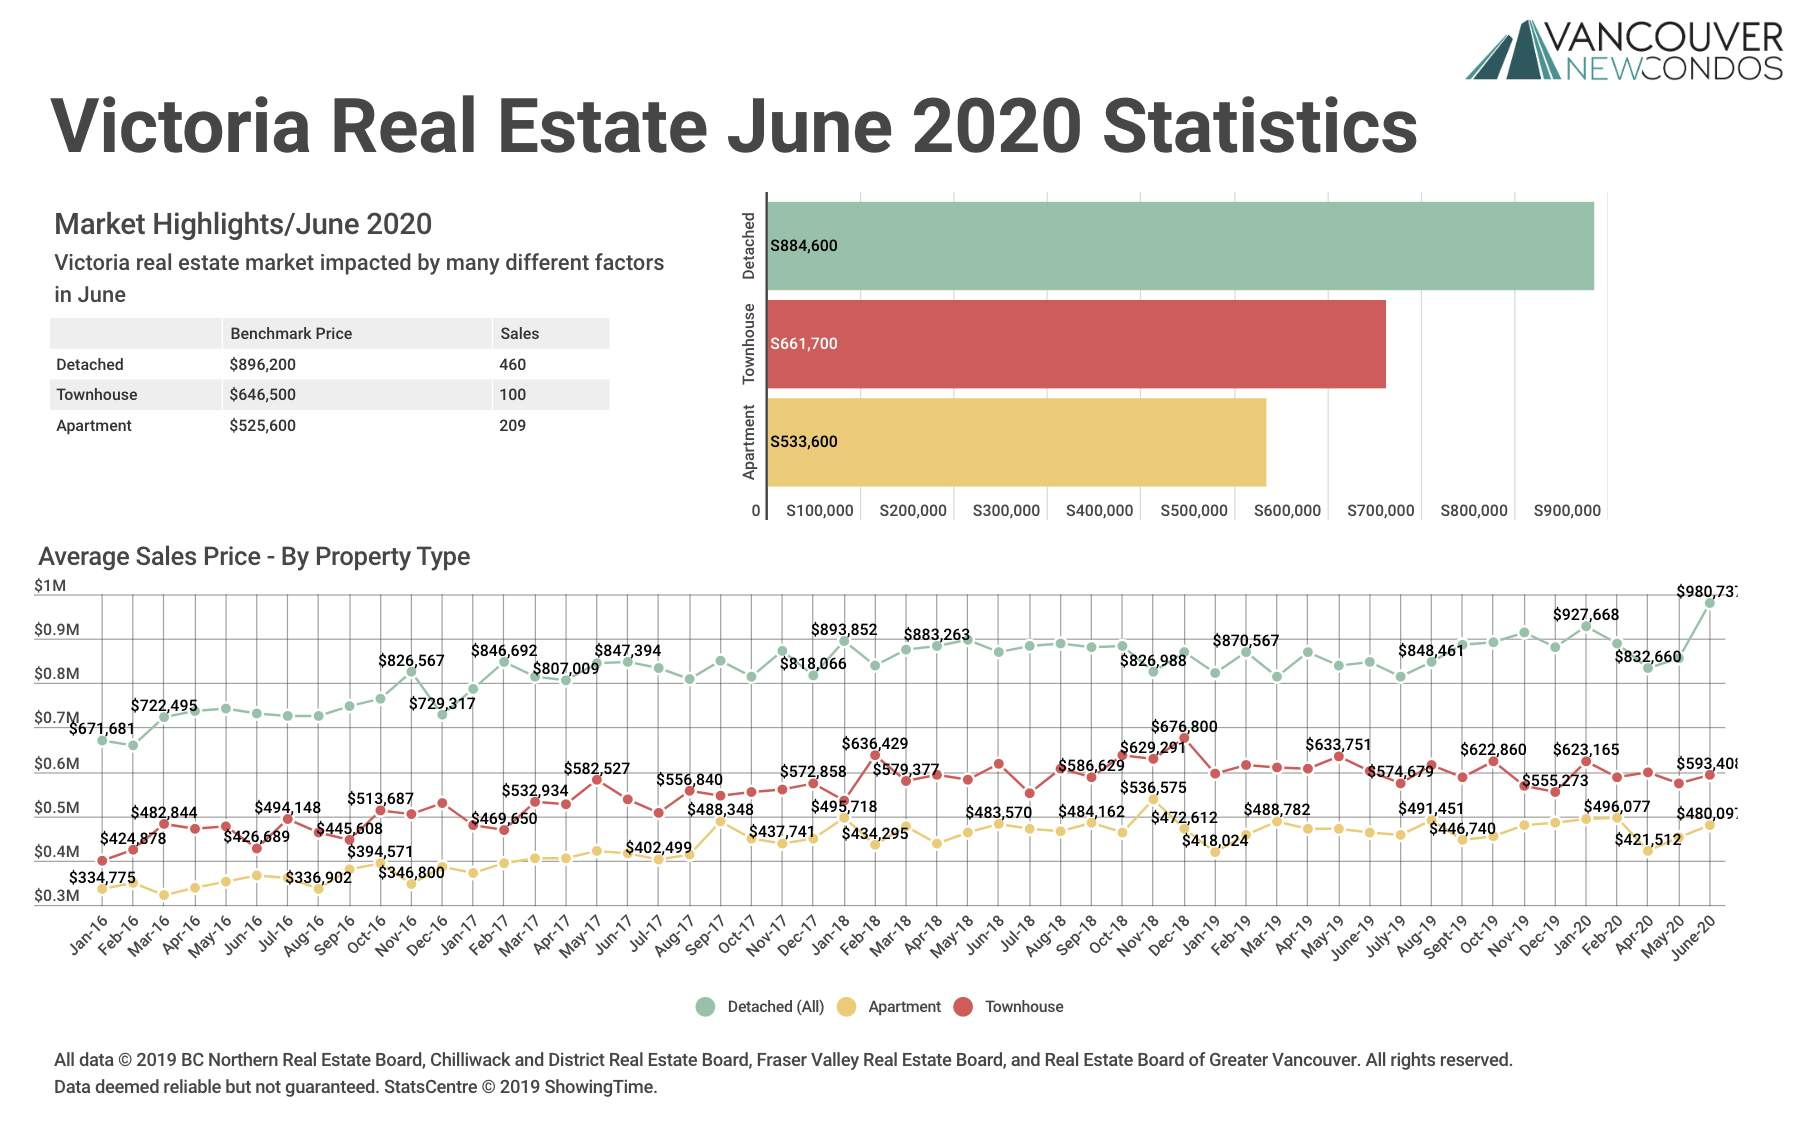 VREB June 2020 Stats Graph